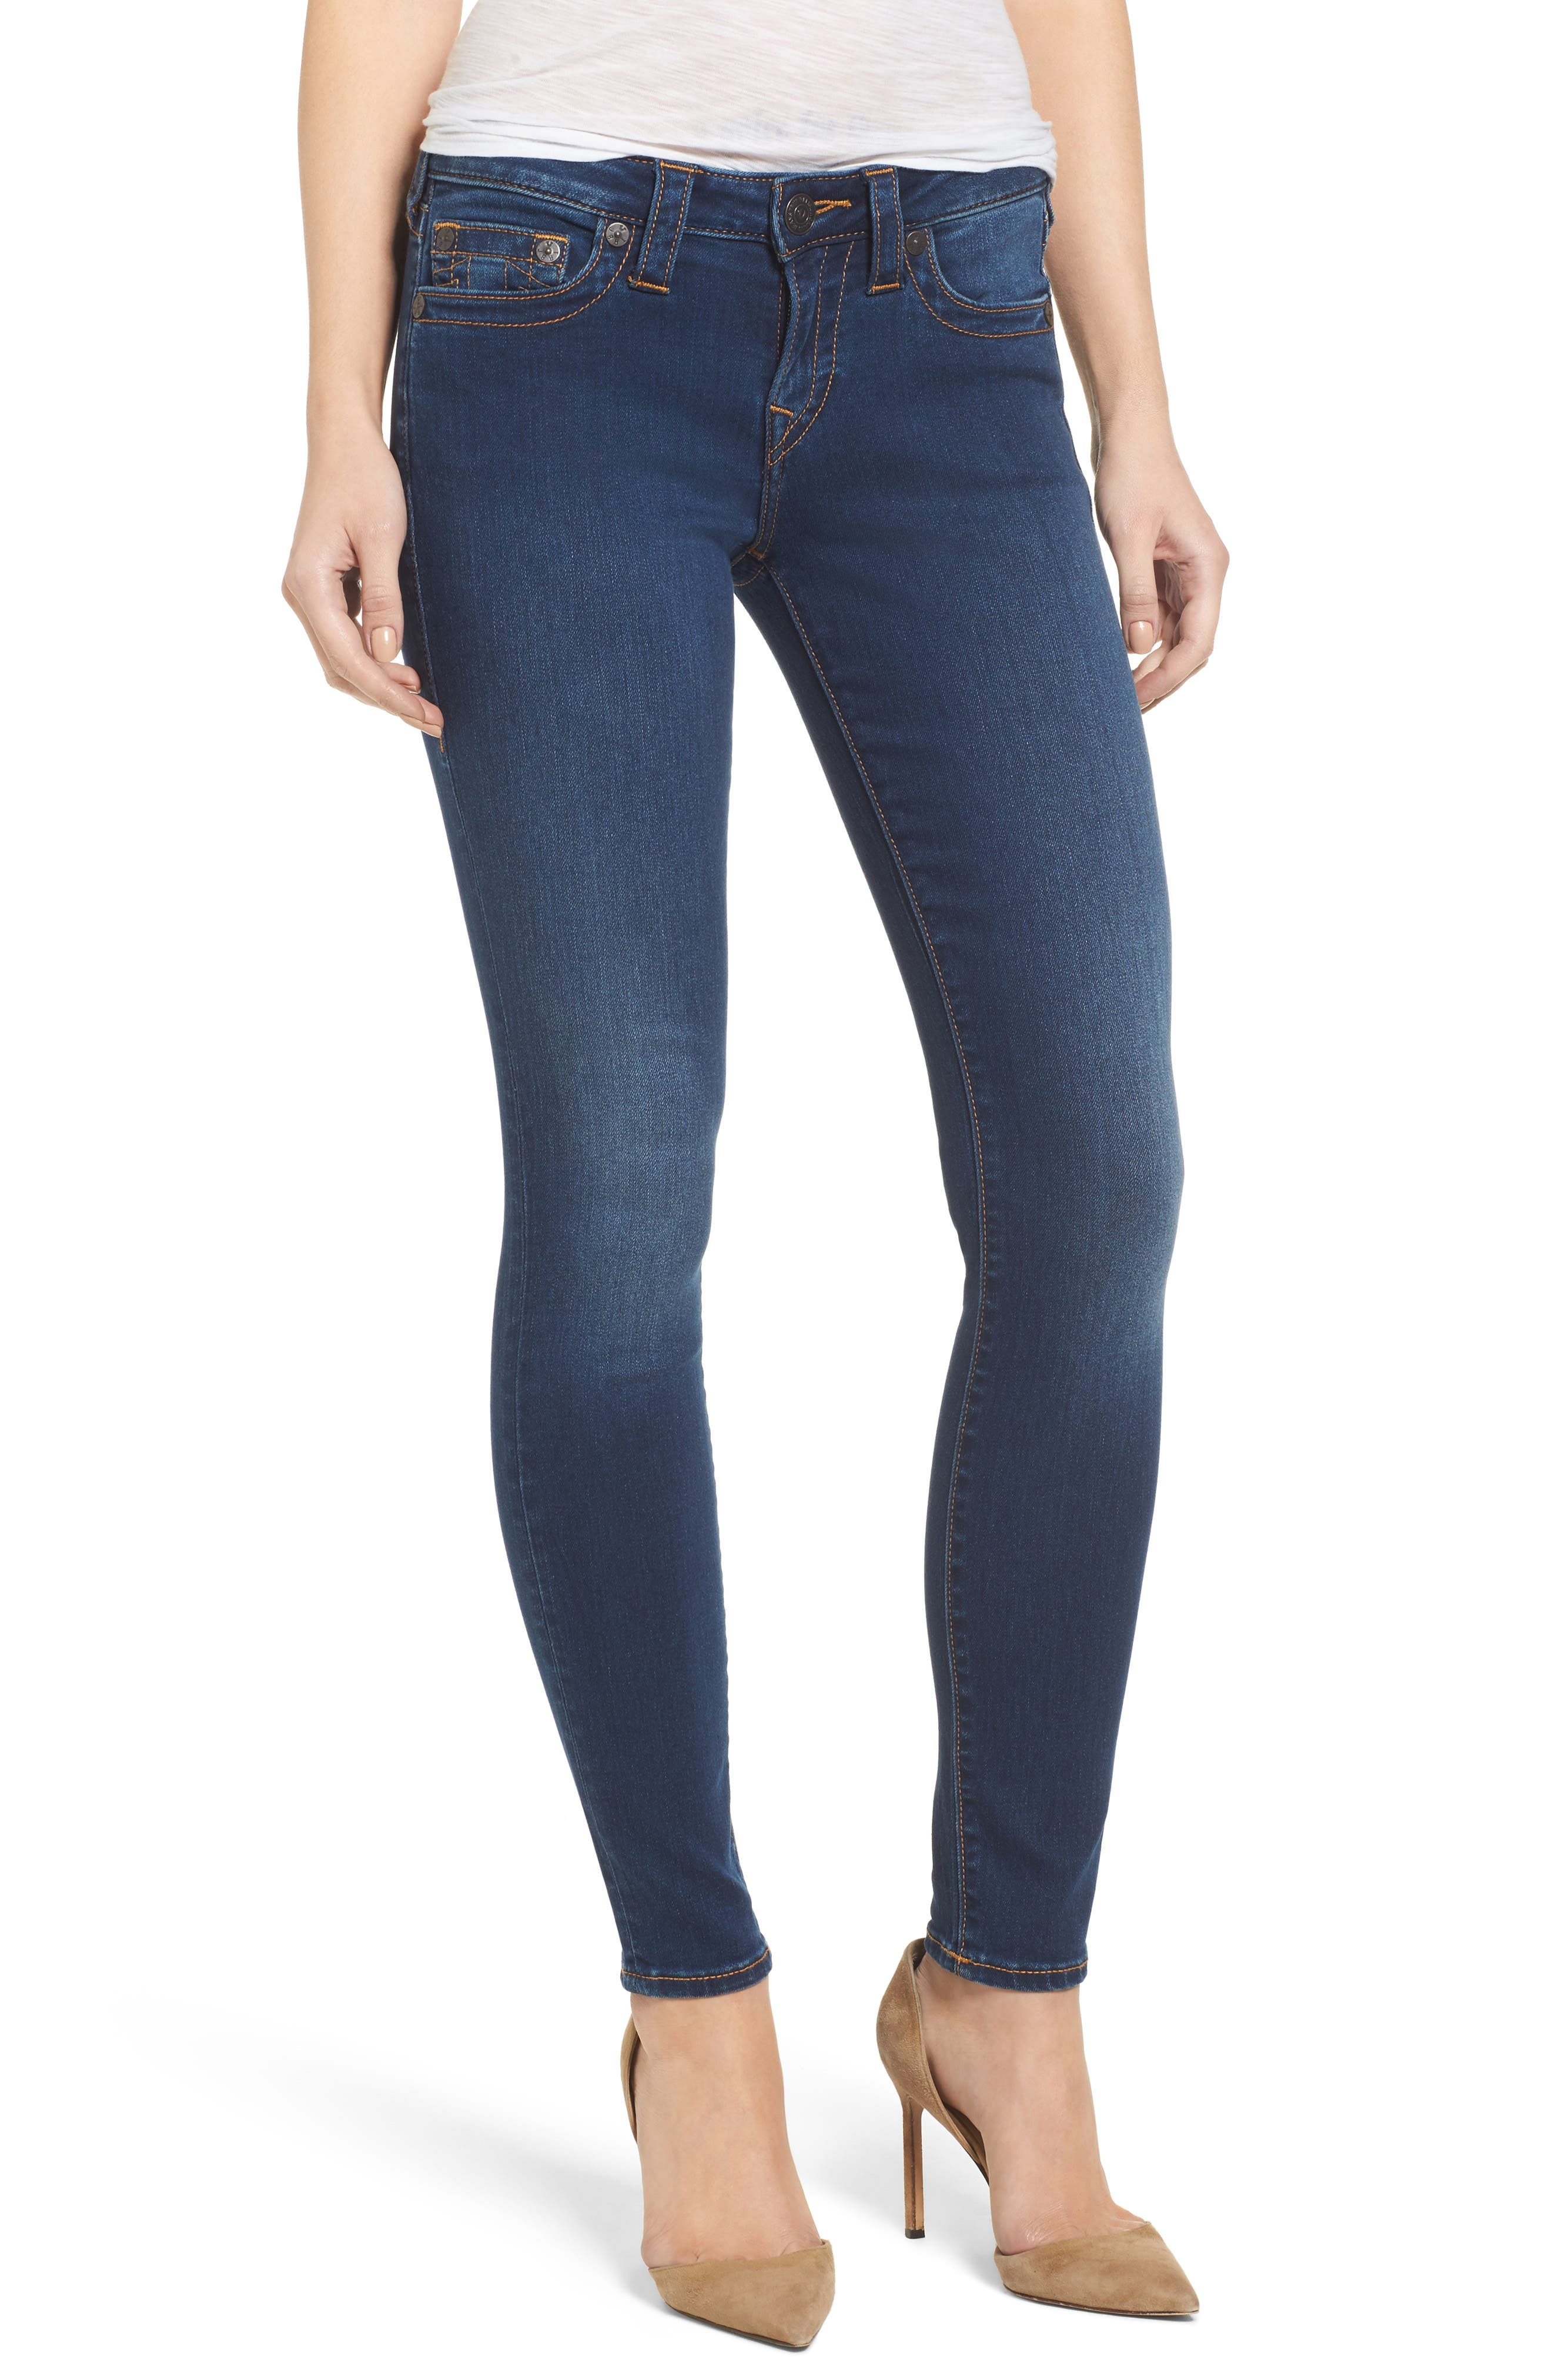 TRUE RELIGION BRAND JEANS,                             Halle Mid Rise Skinny Jeans,                             Main thumbnail 1, color,                             400